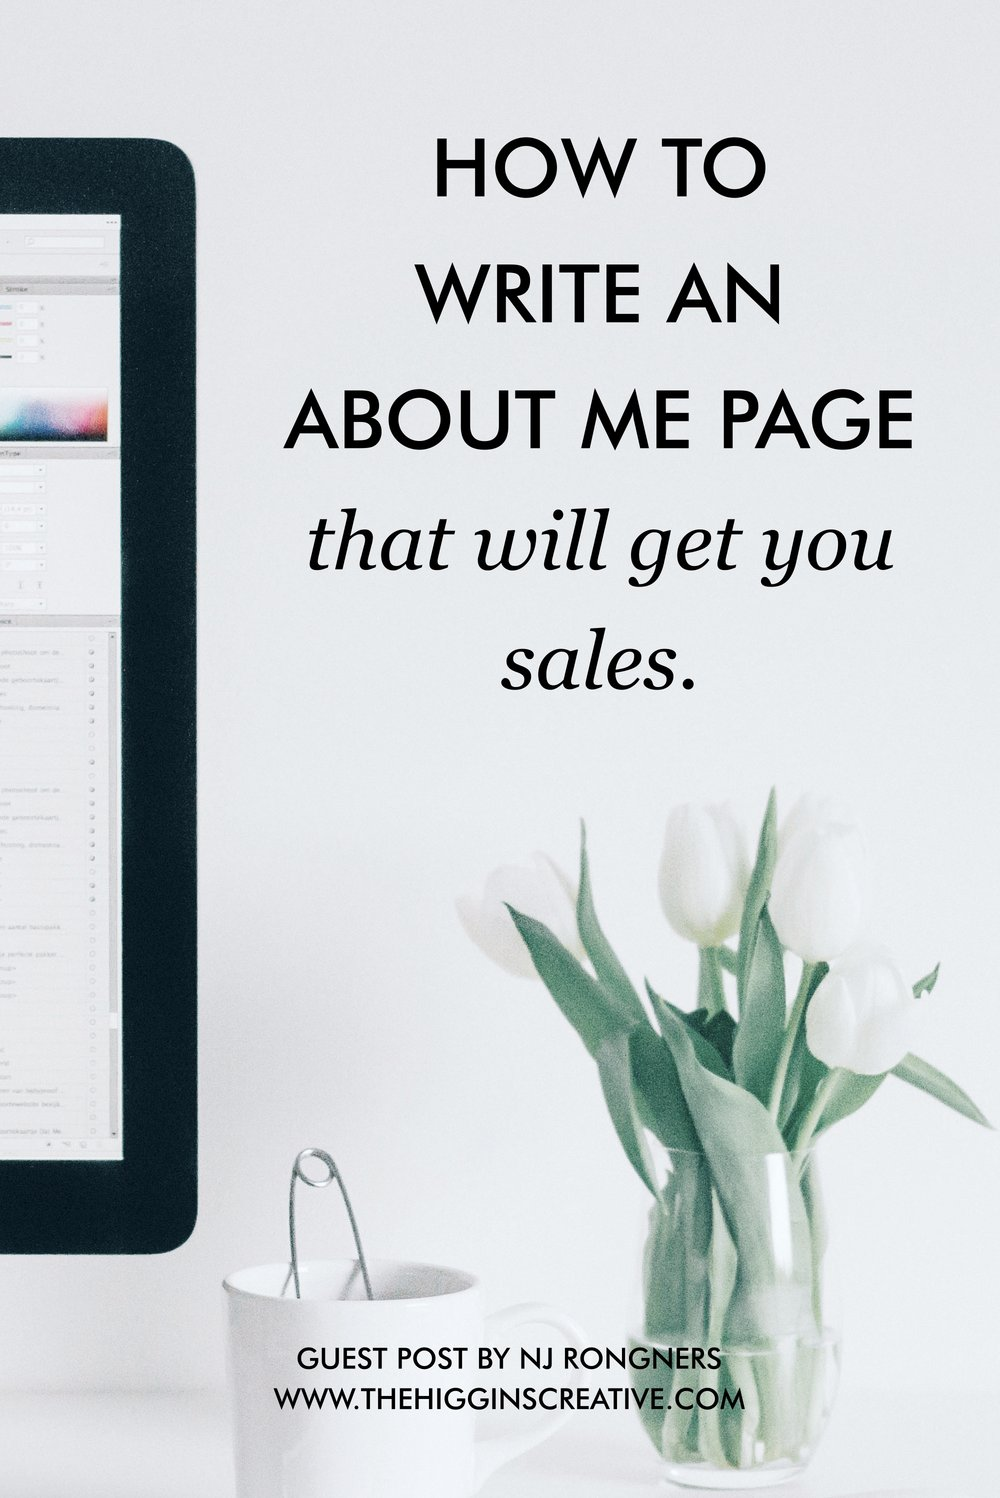 How to write an about me page that will get you sales by NJ Rongner on The Higgins Creative Blog